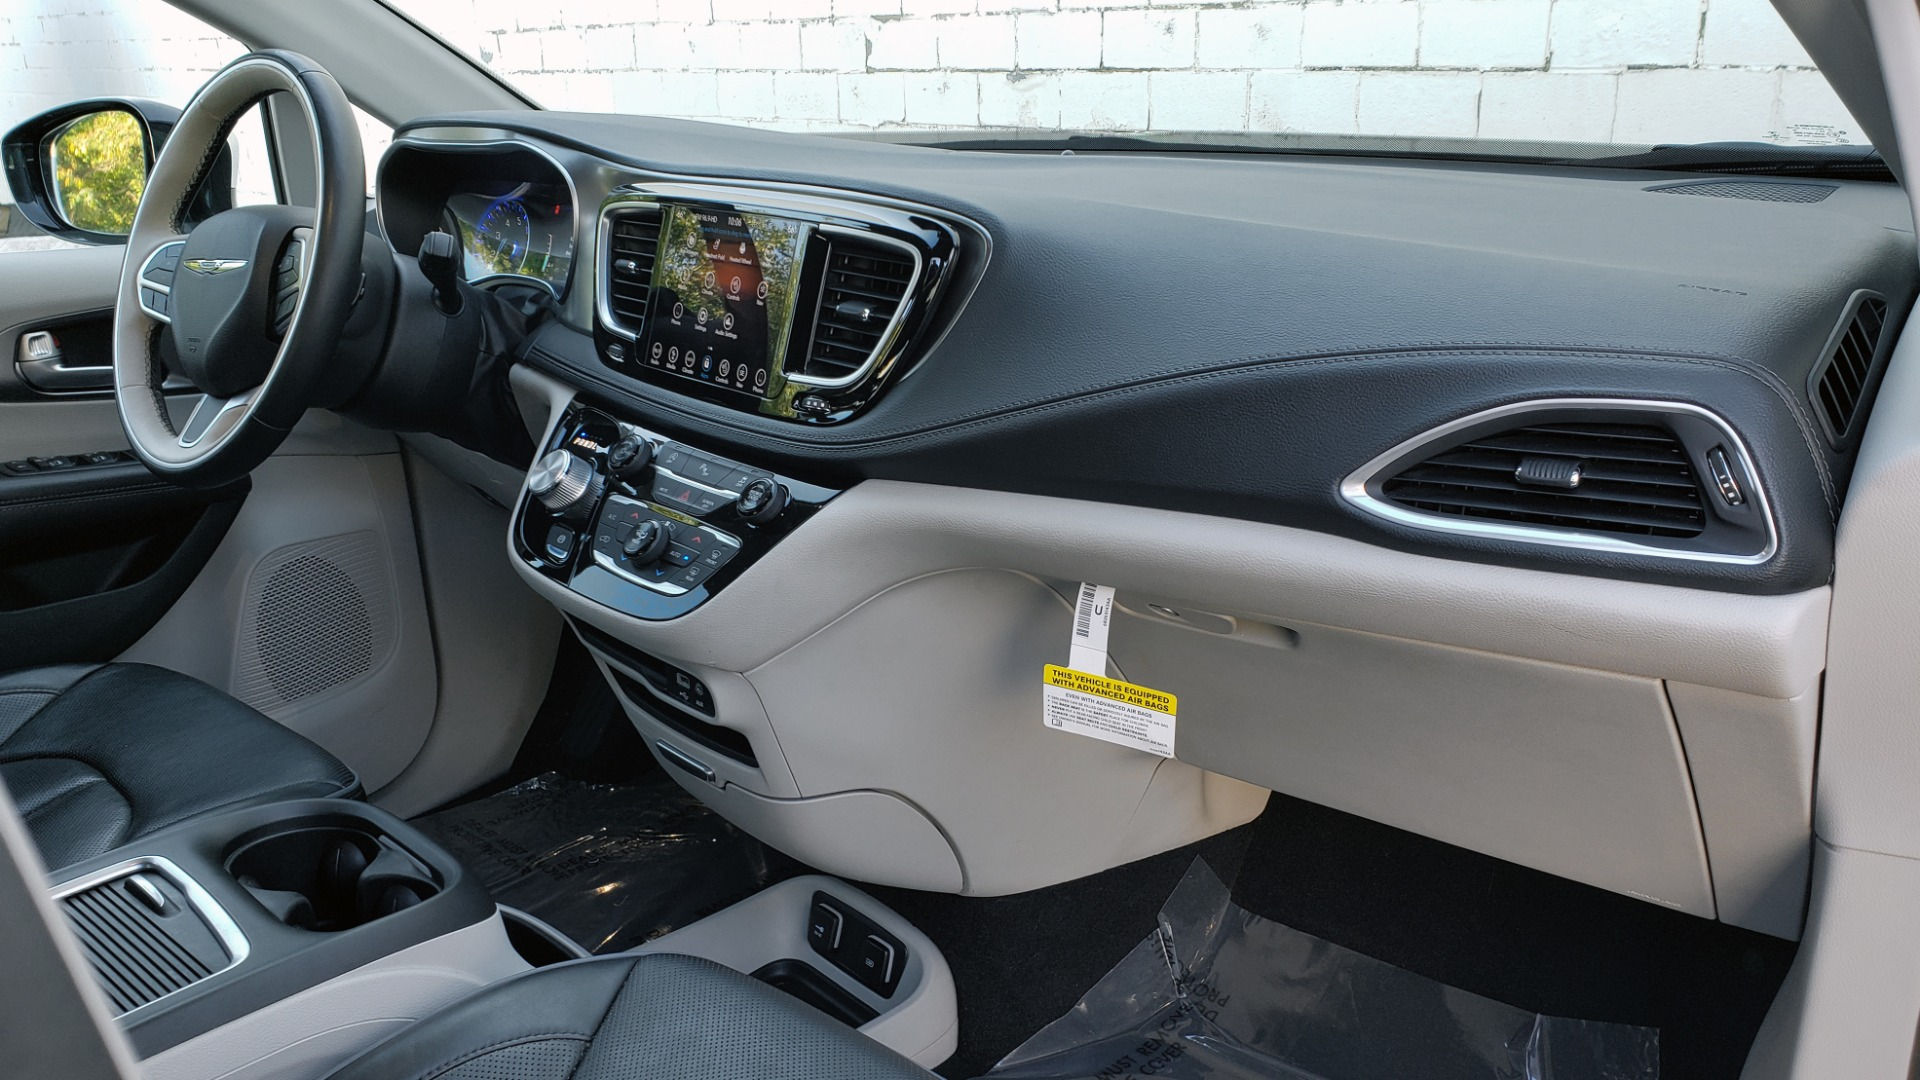 Used 2018 Chrysler PACIFICA LIMITED / 3.6L V6 / NAV / PANO-ROOF / 3-ROWS / REARVIEW for sale Sold at Formula Imports in Charlotte NC 28227 72